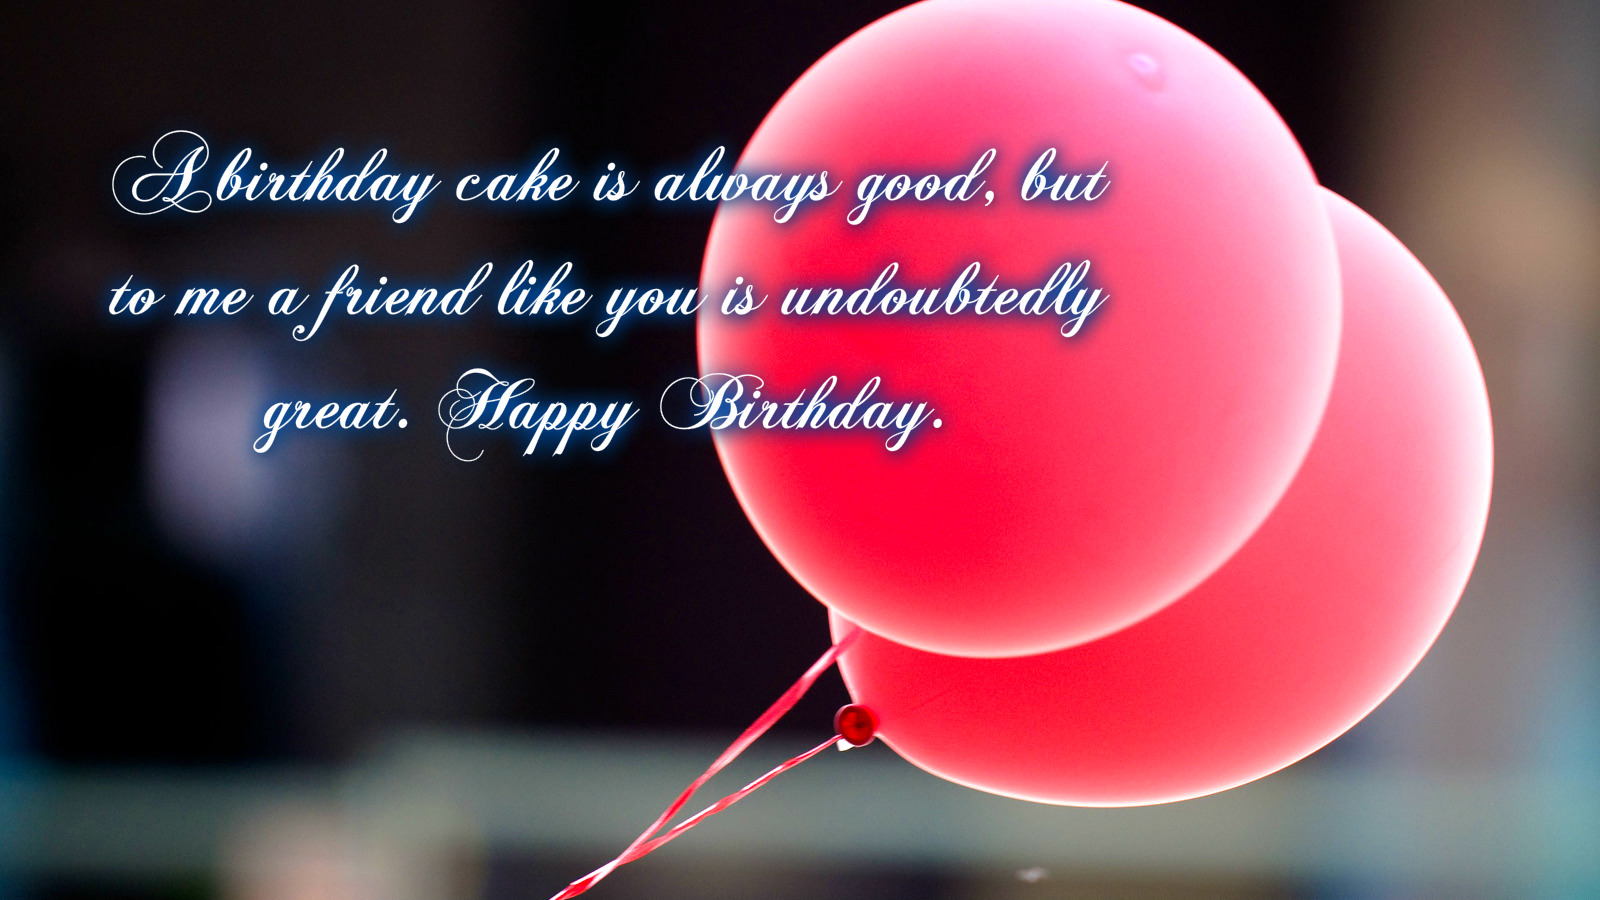 Happy birthday greetings for facebook happy birthday greetings kristyandbryce Image collections